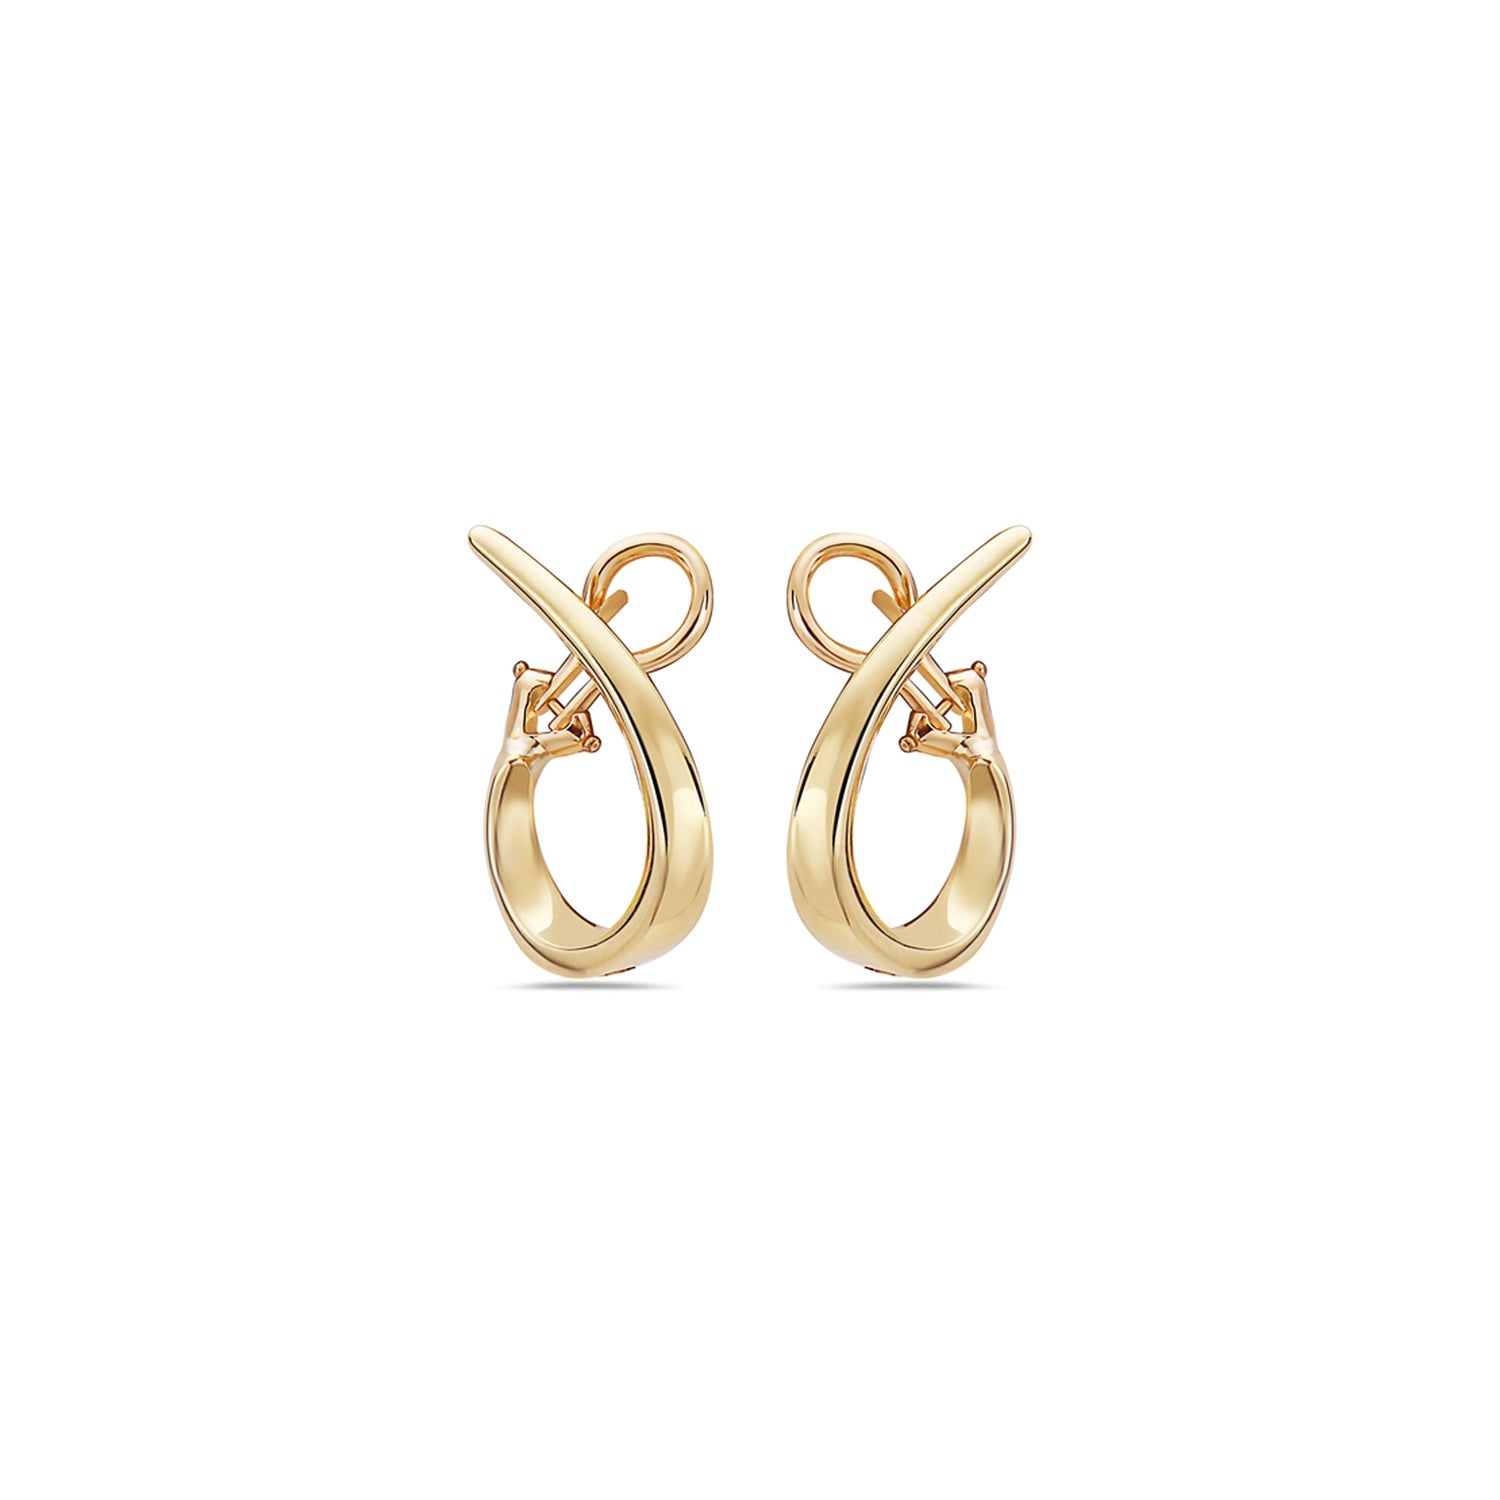 Charles Krypell 18k Yellow Gold 26mm Signature Twisted Hoop Earrings